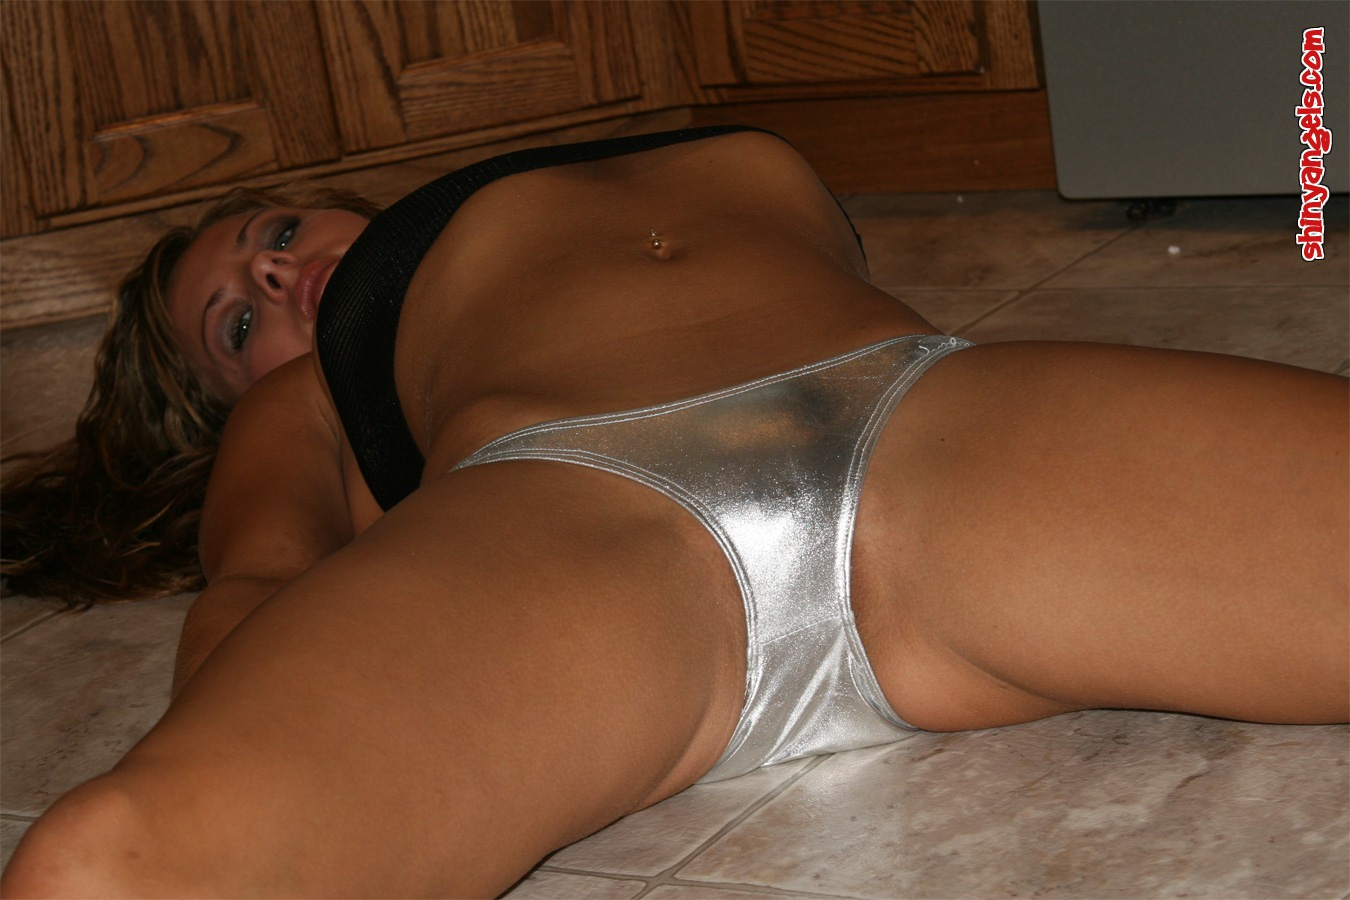 Shiny Panties Thumbs 54